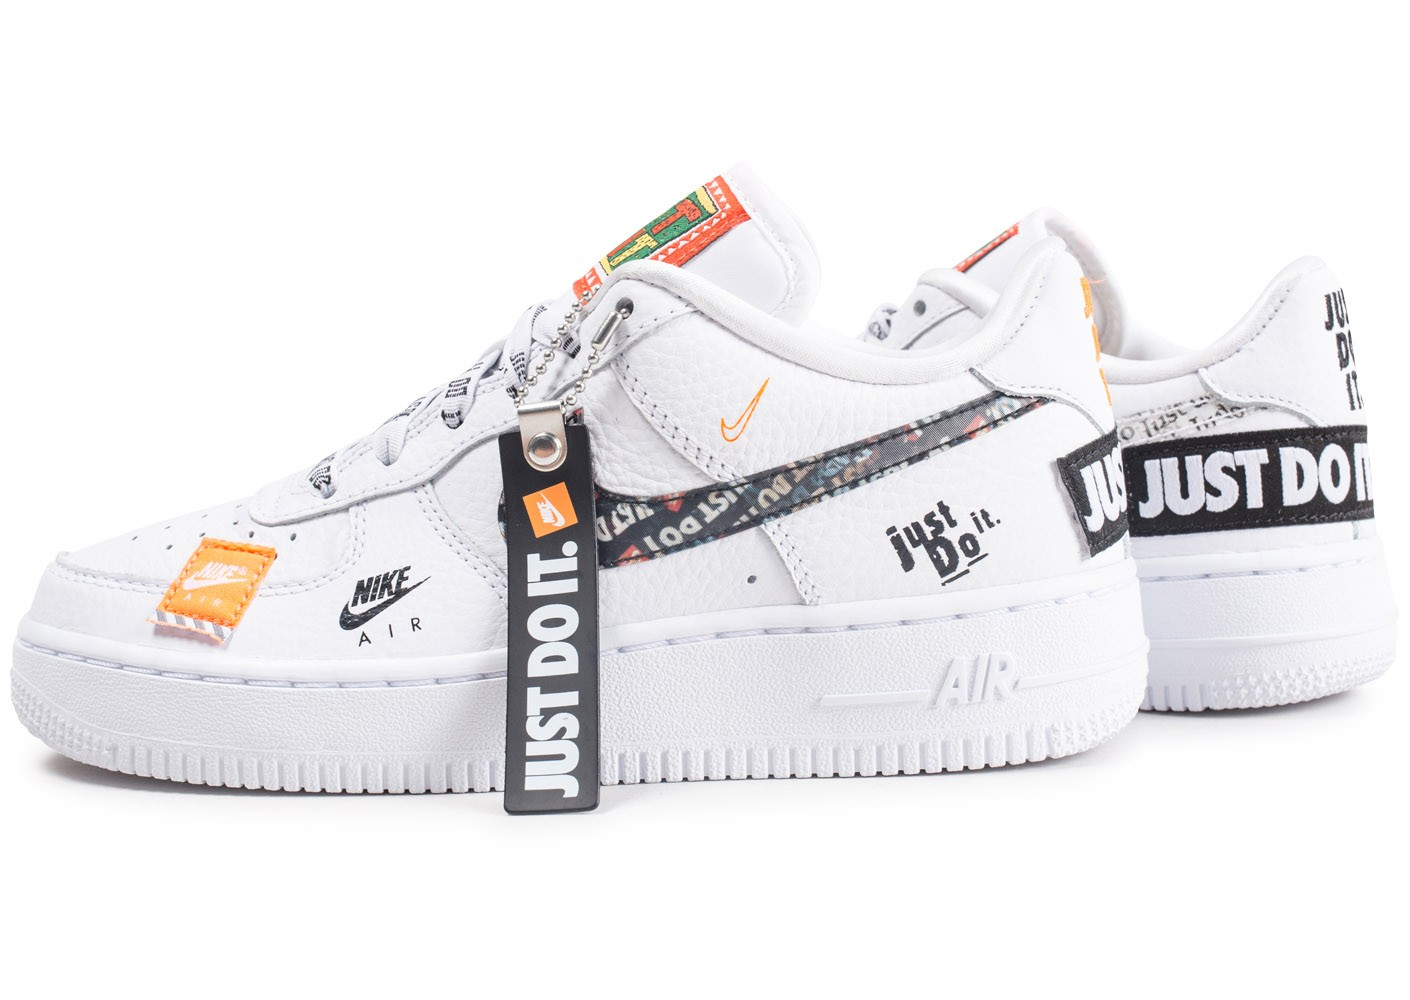 Nike Air Force 1 Just Do It Premium blanche junior ...